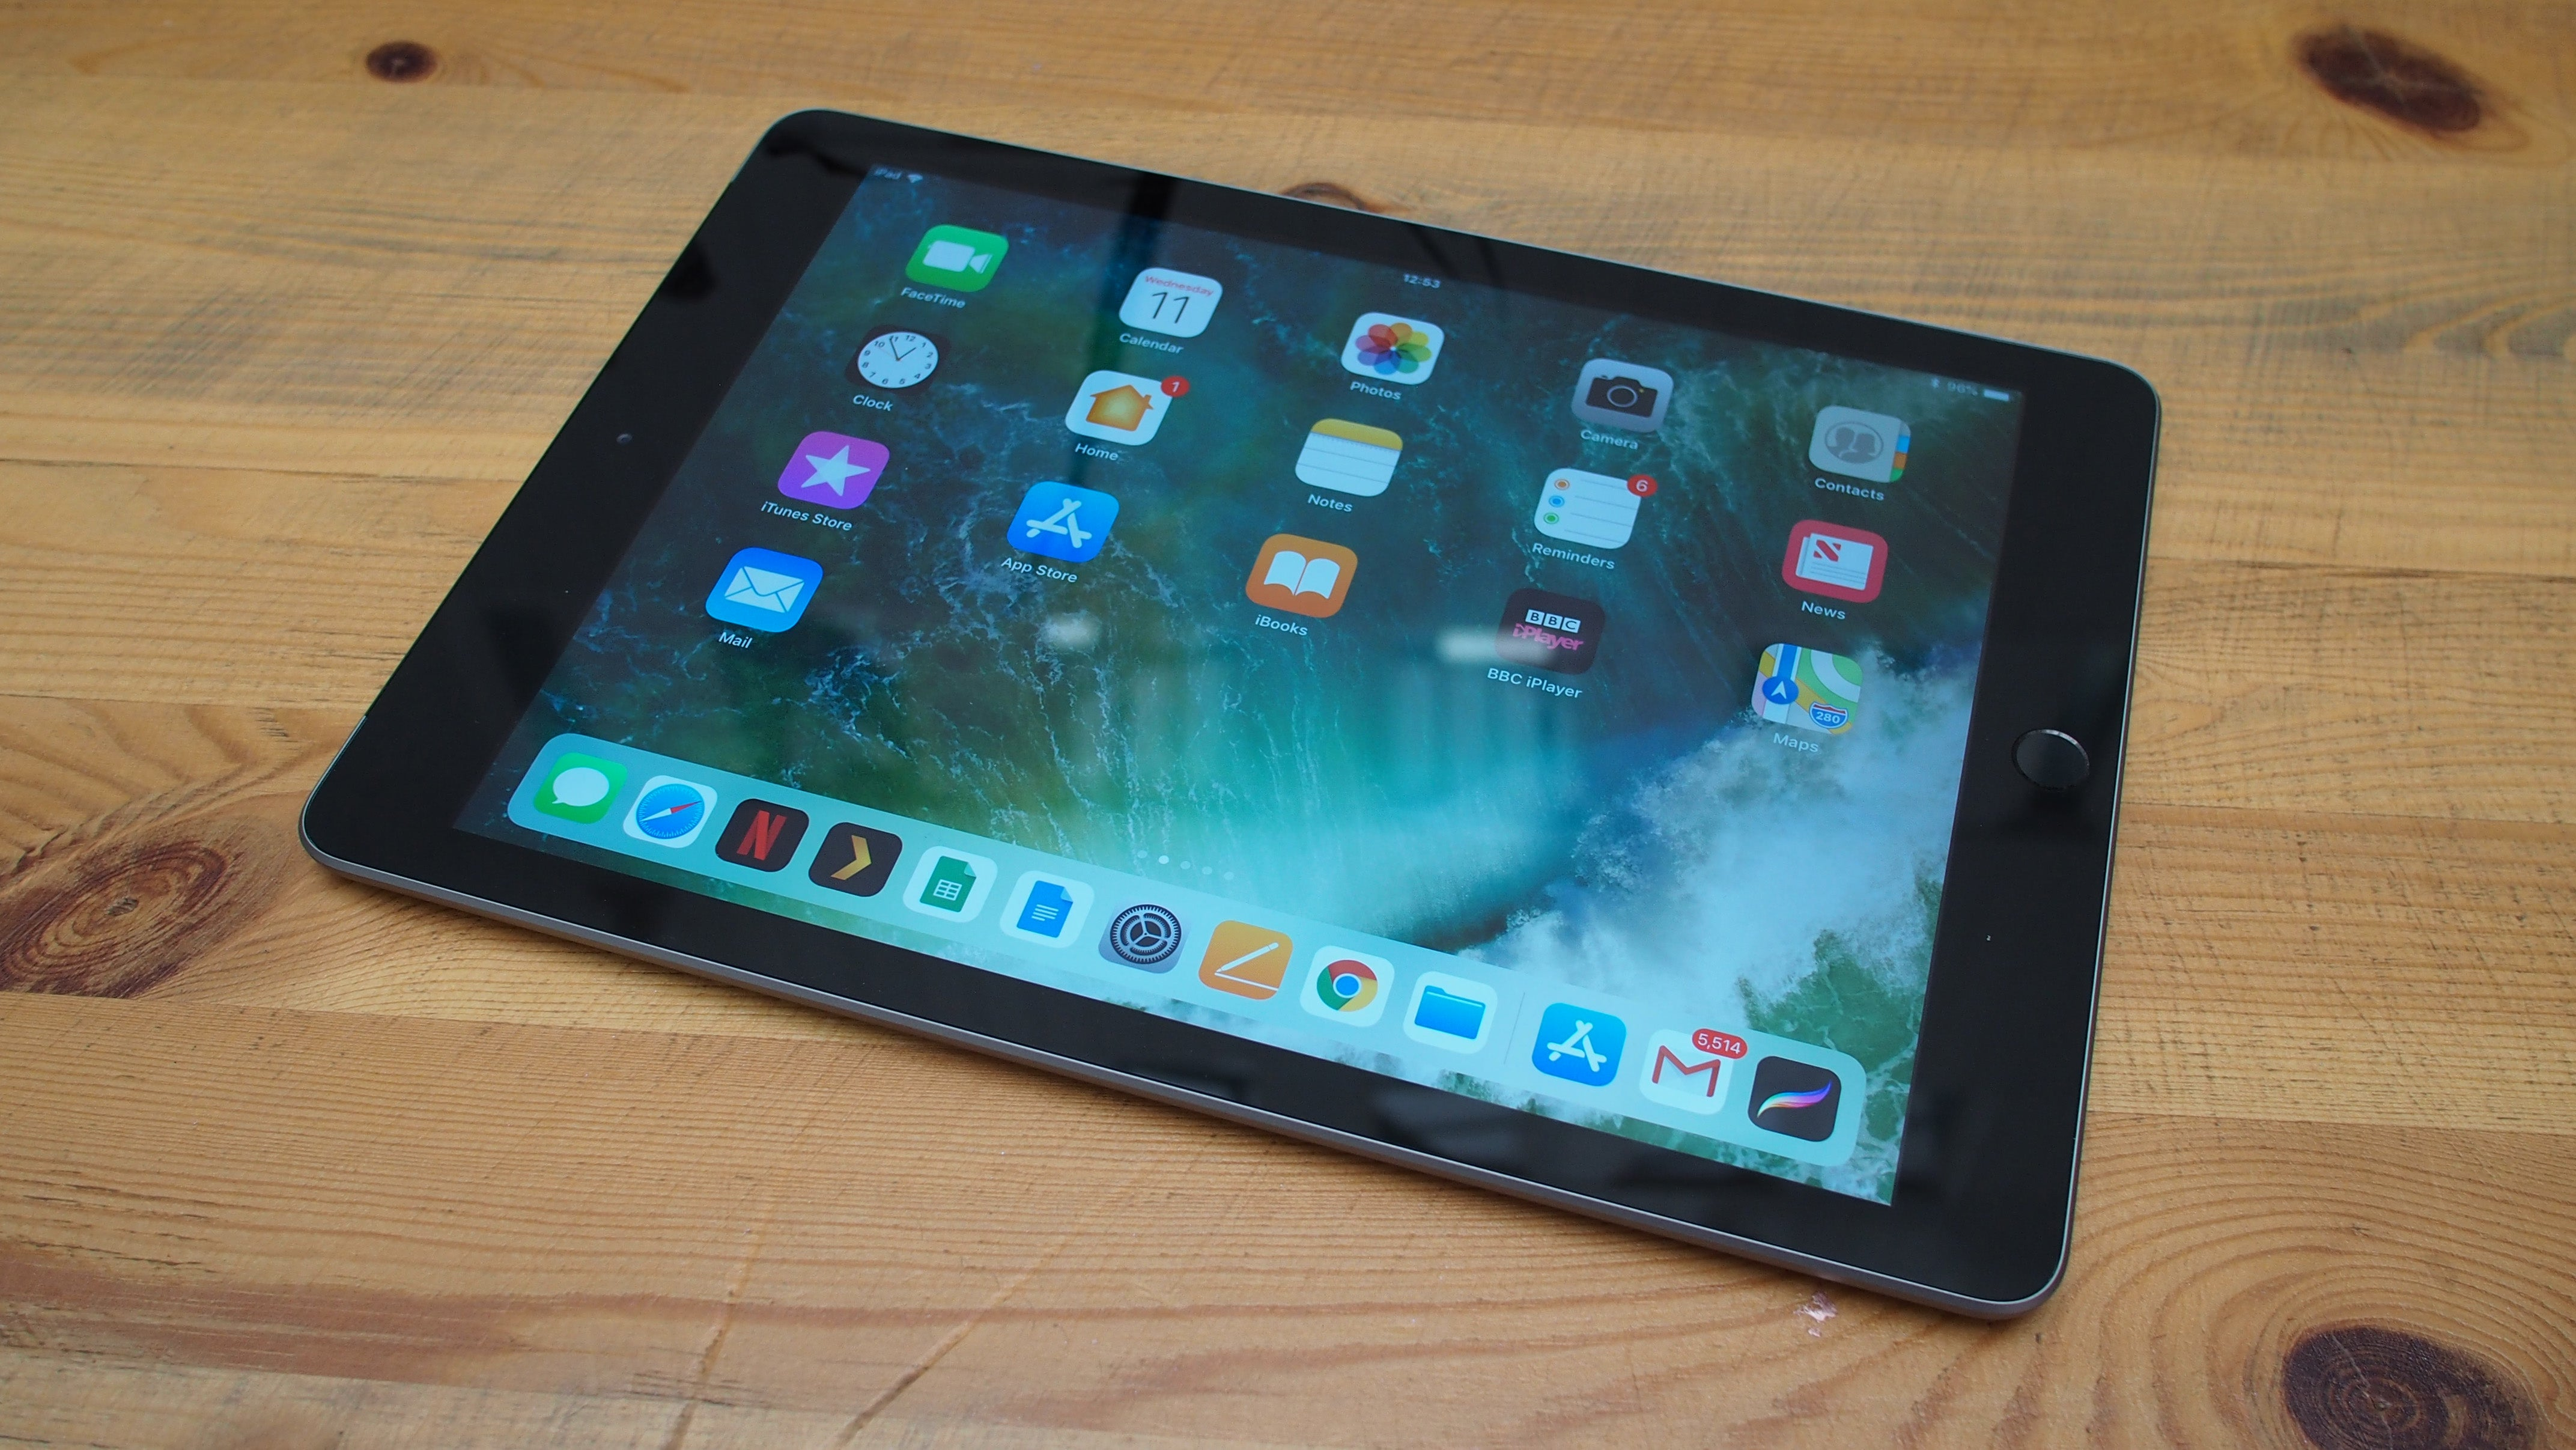 Home Design App For Ipad Pro Ipad 2018 9 7 Inch Review Trusted Reviews